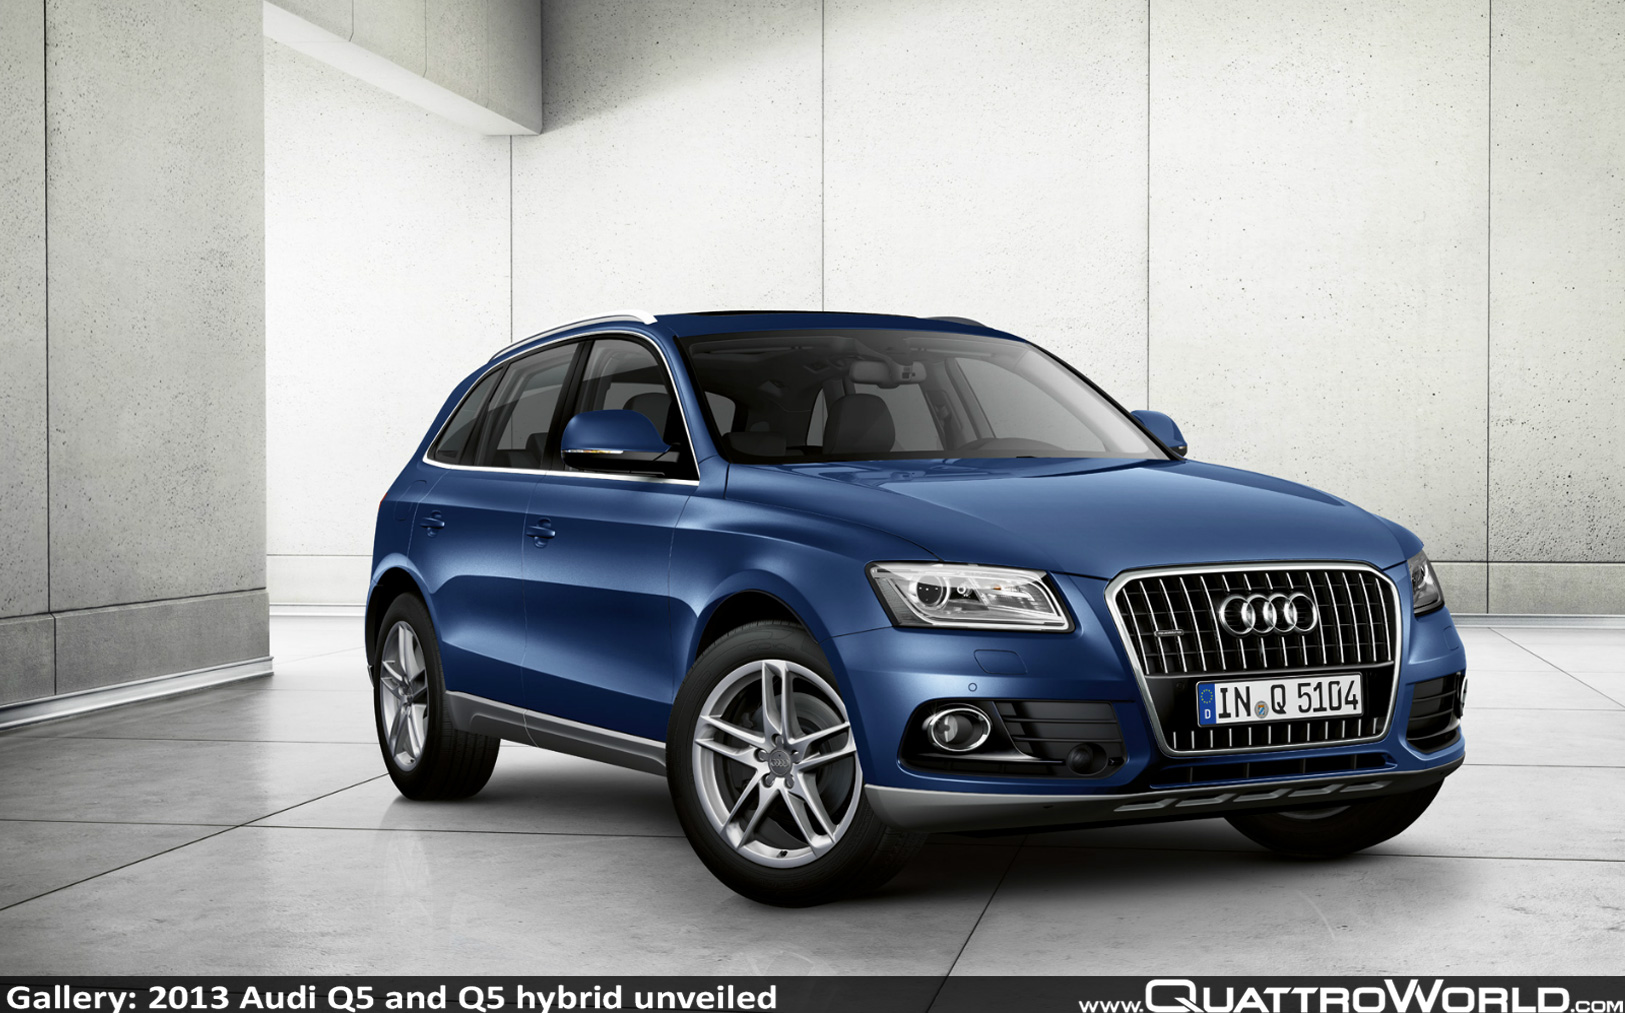 audi q5 2013 latest cars models 2013 audi q5 audi q5 2013 widescreen exotic car wallpapers 02. Black Bedroom Furniture Sets. Home Design Ideas